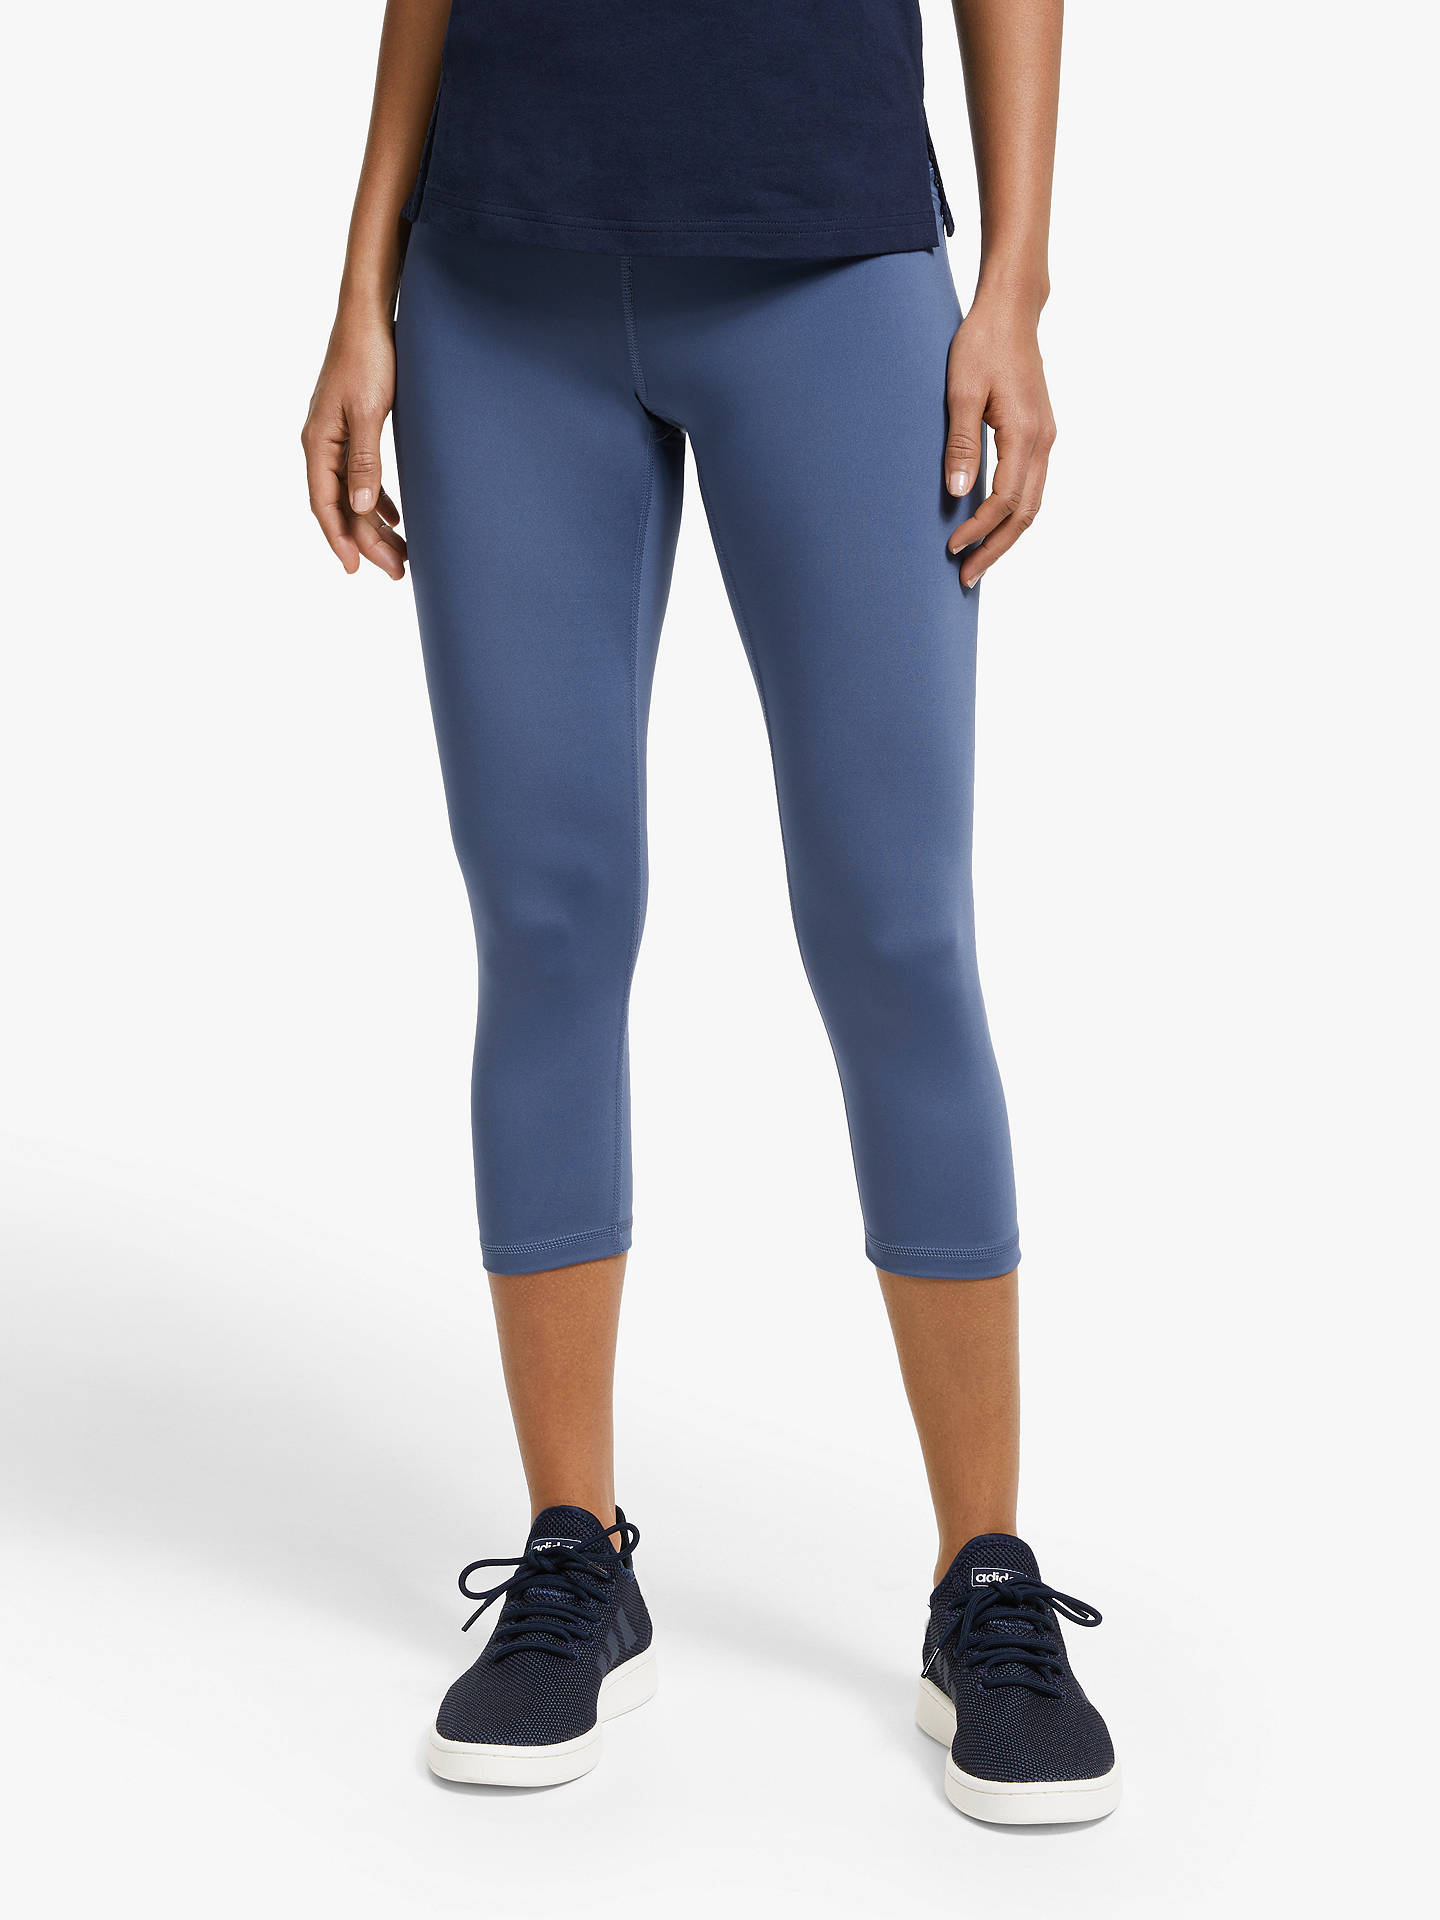 2f6dd2e688 adidas Believe This High Rise 3/4 Training Tights, Tech Ink